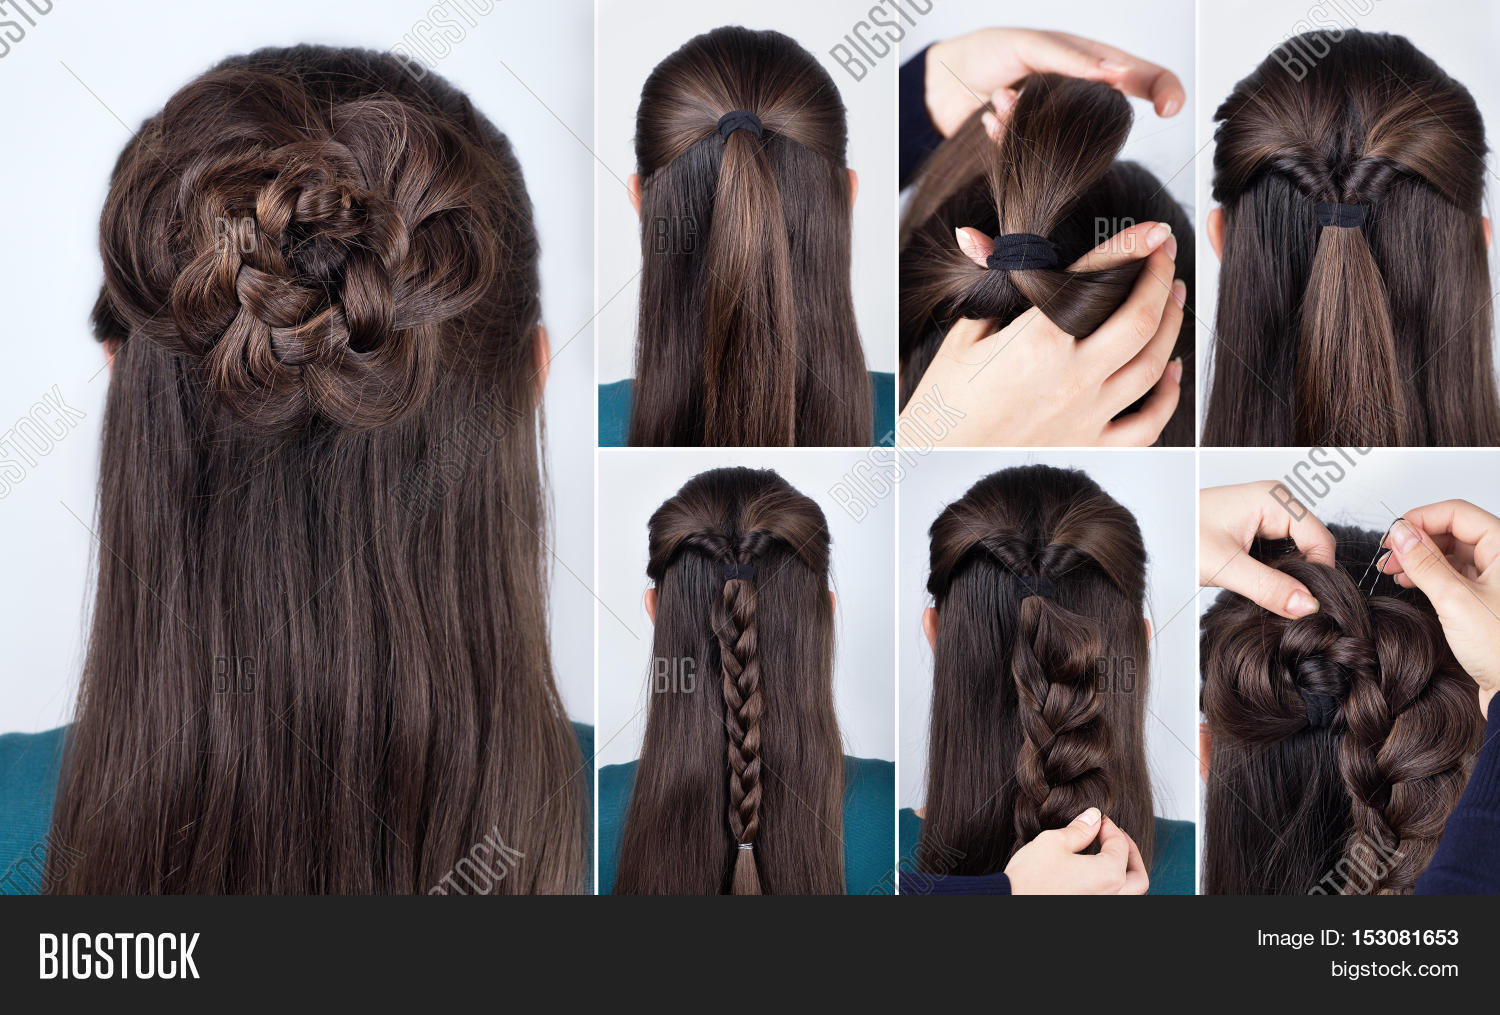 Hairstyles Step By Step Tumblr | www.imgkid.com - The ...